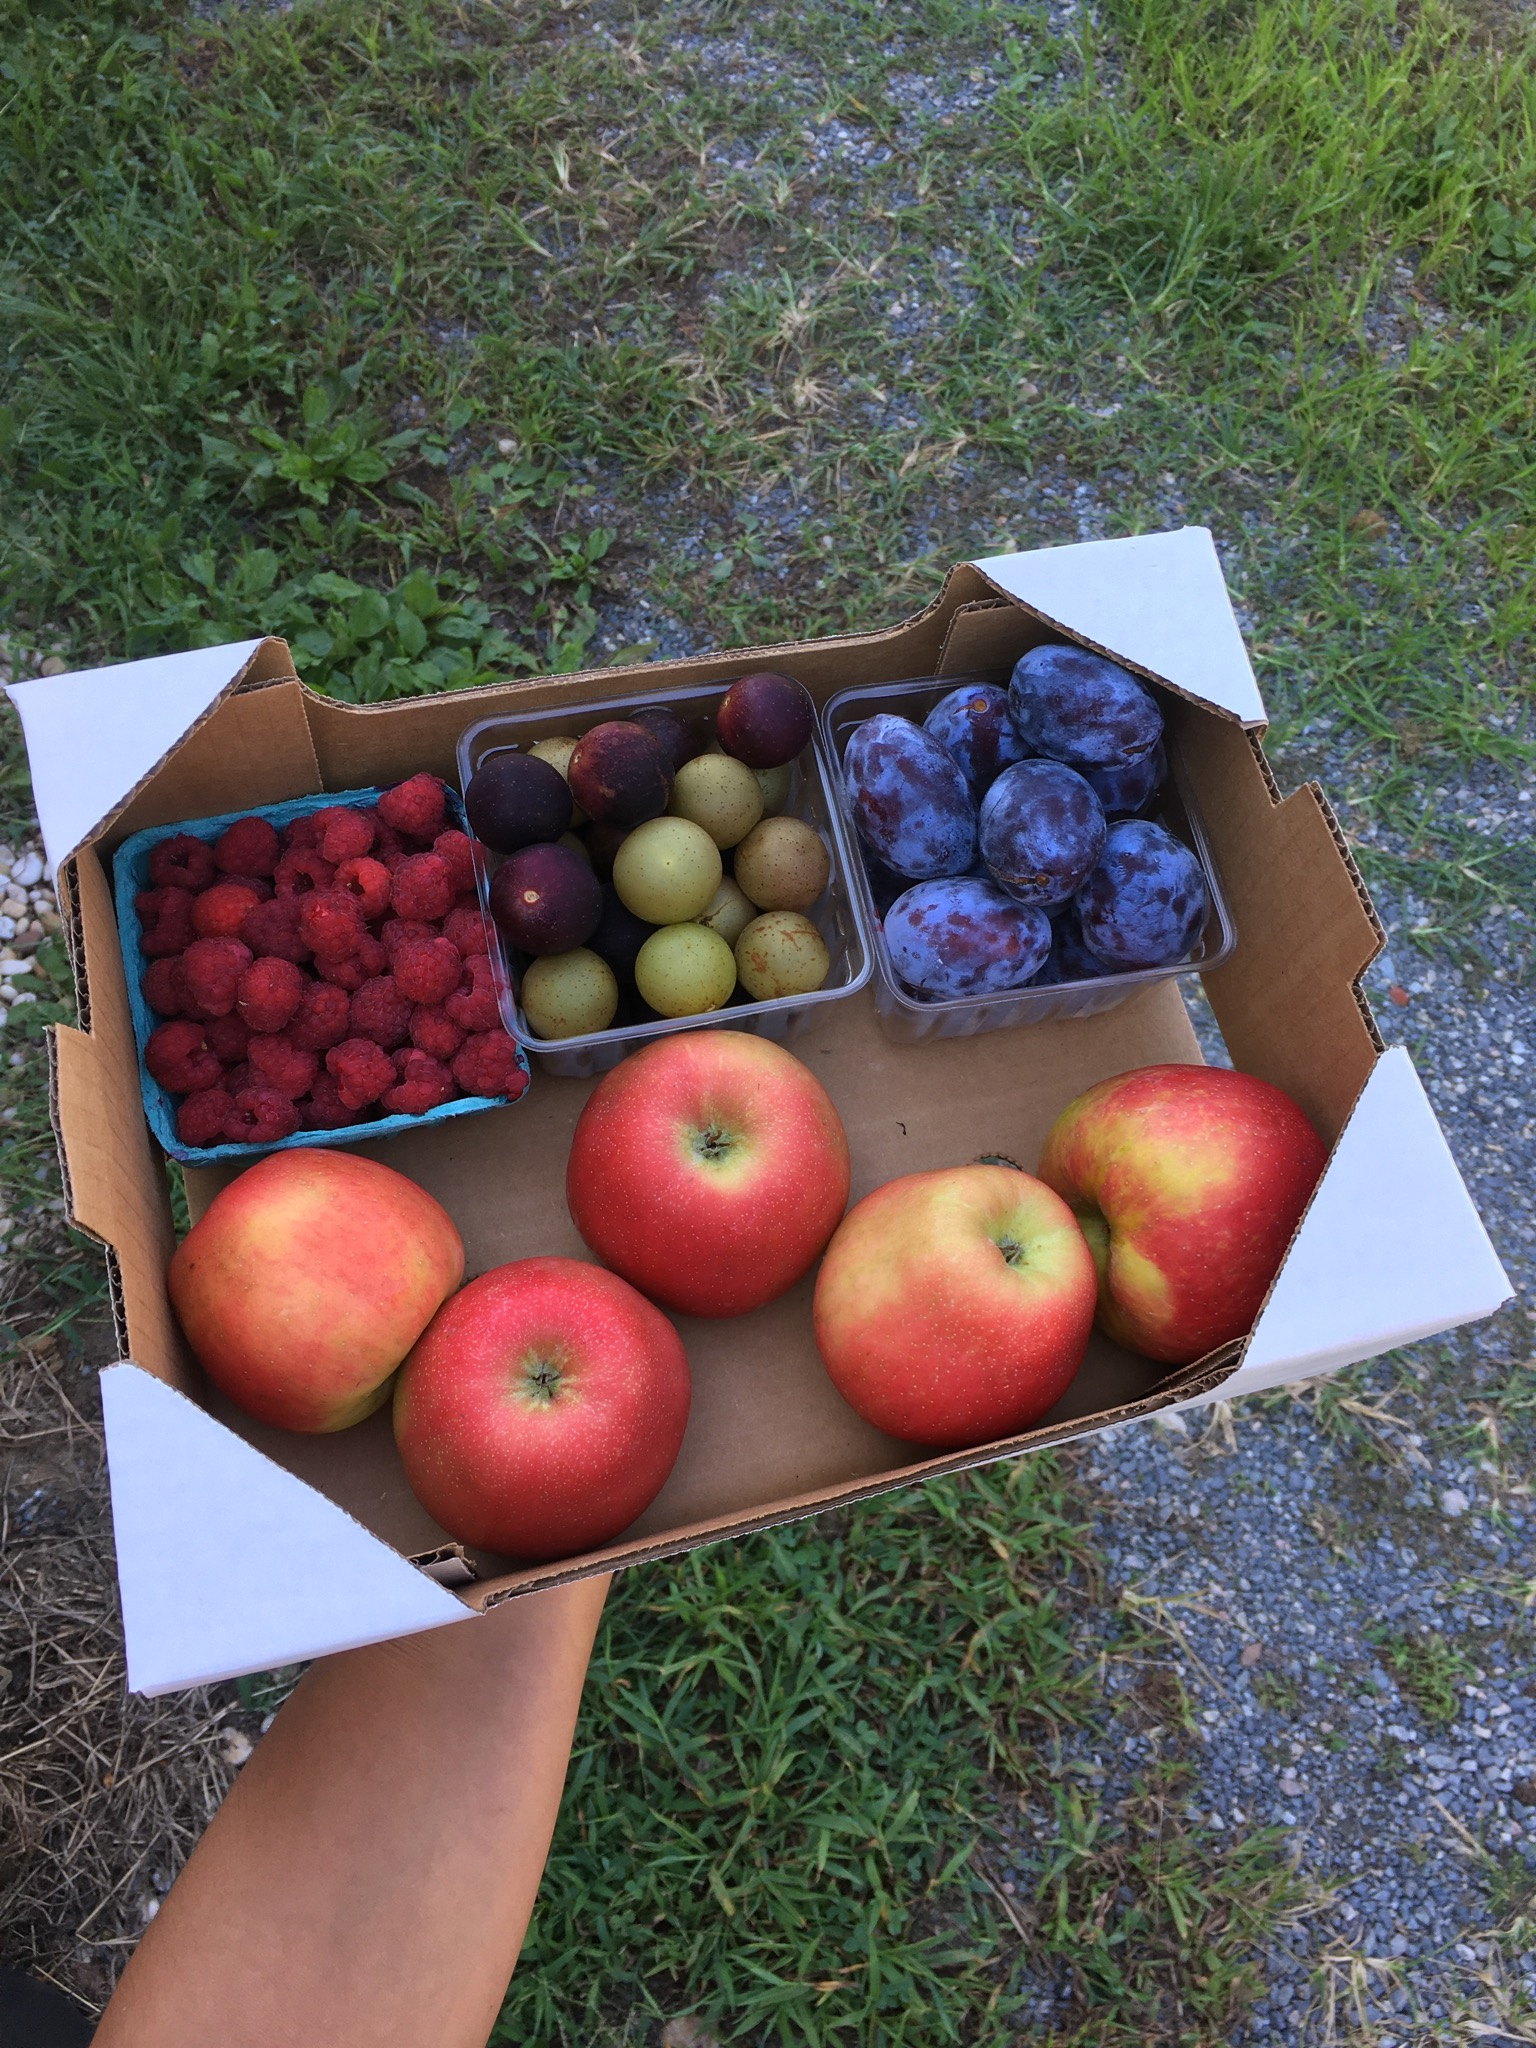 Final week of the Summer Farm Share. Next week begins the Fall Farm Share